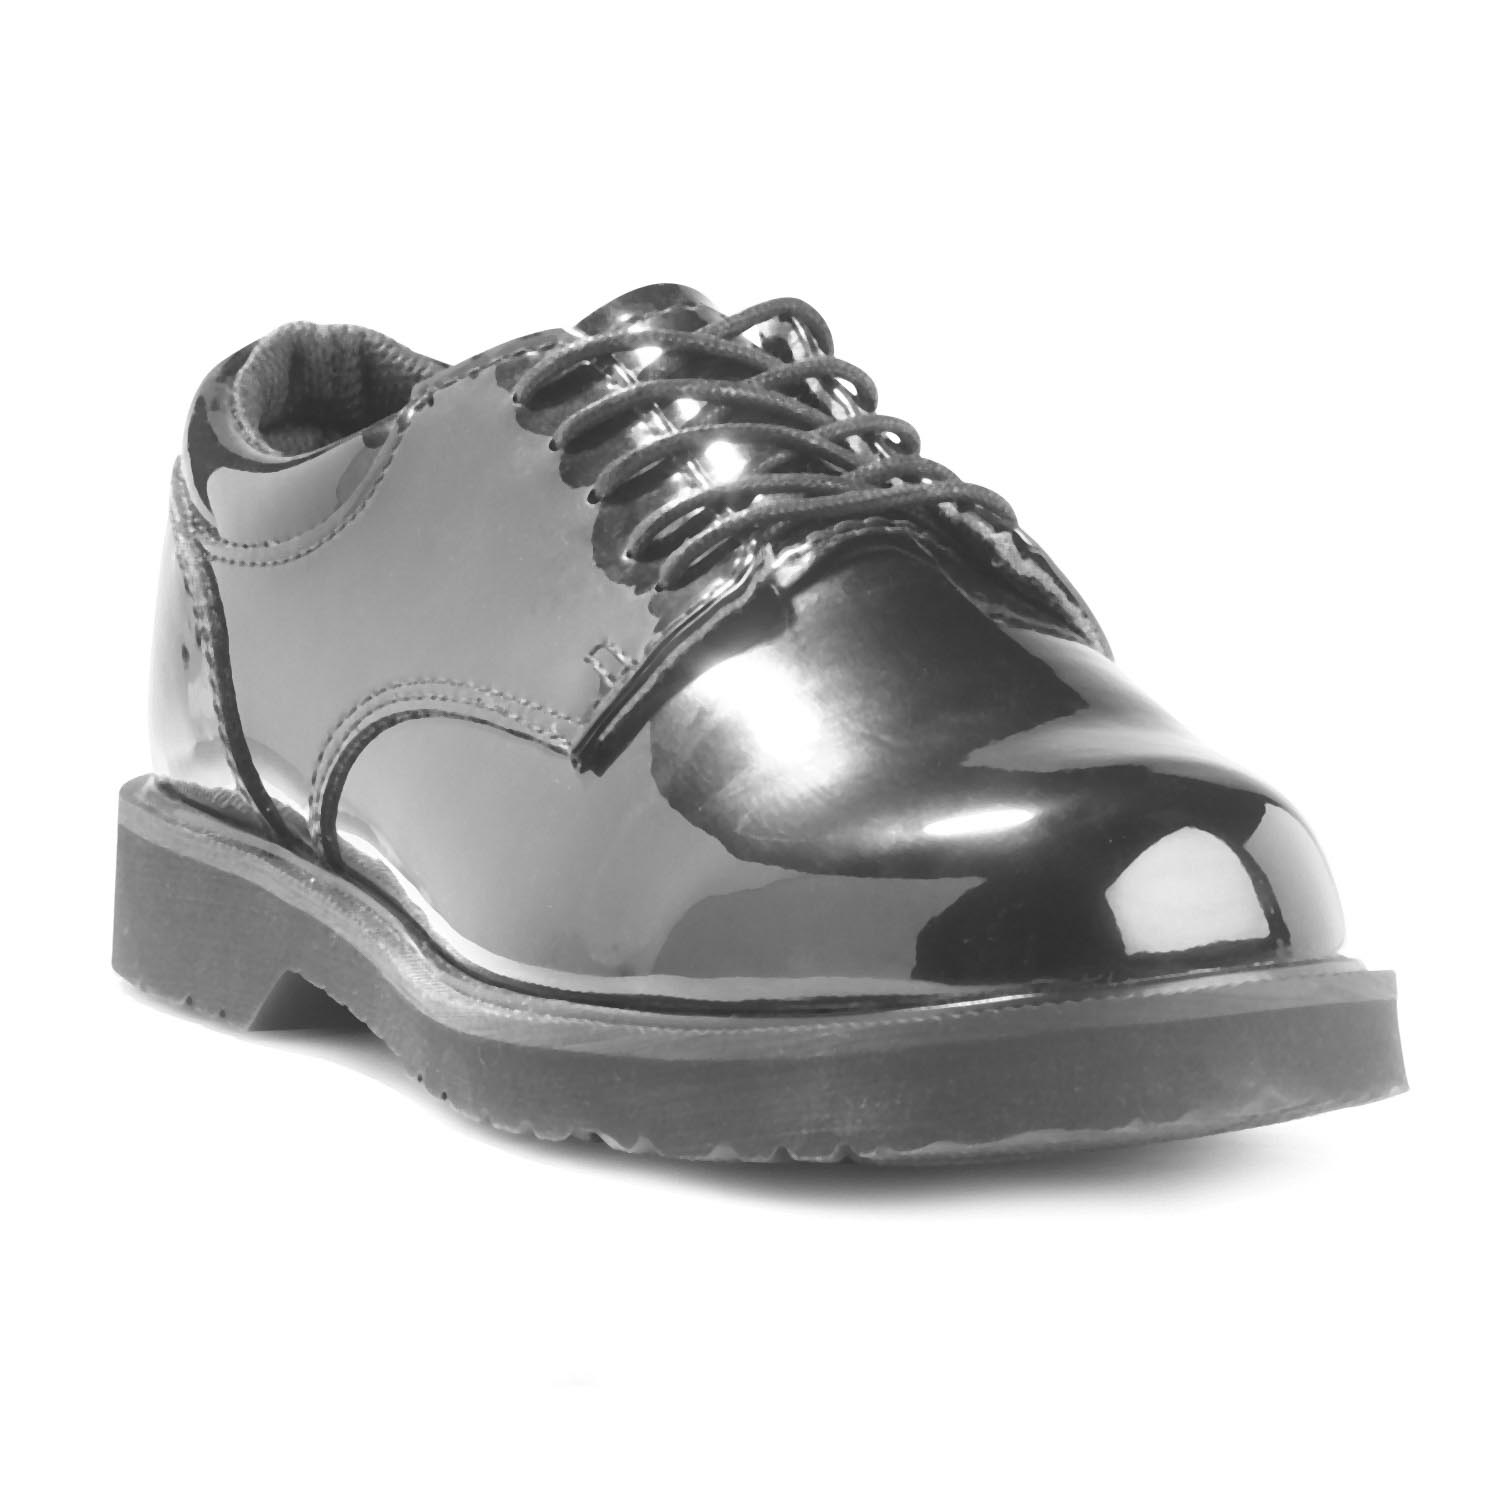 Bates High Gloss Duty Oxfords